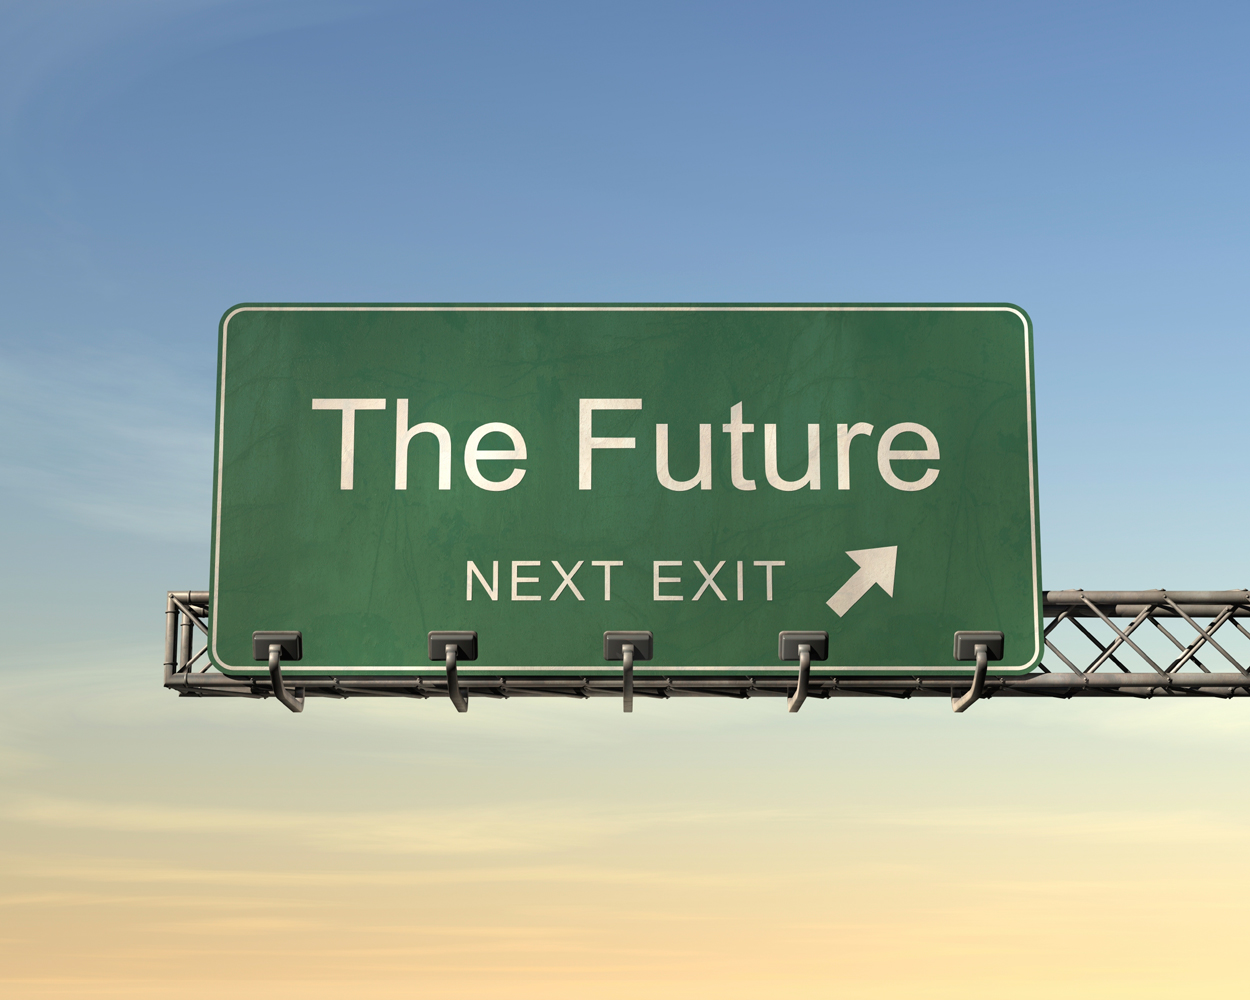 The Future Next Exit Sign 285.53 Kb